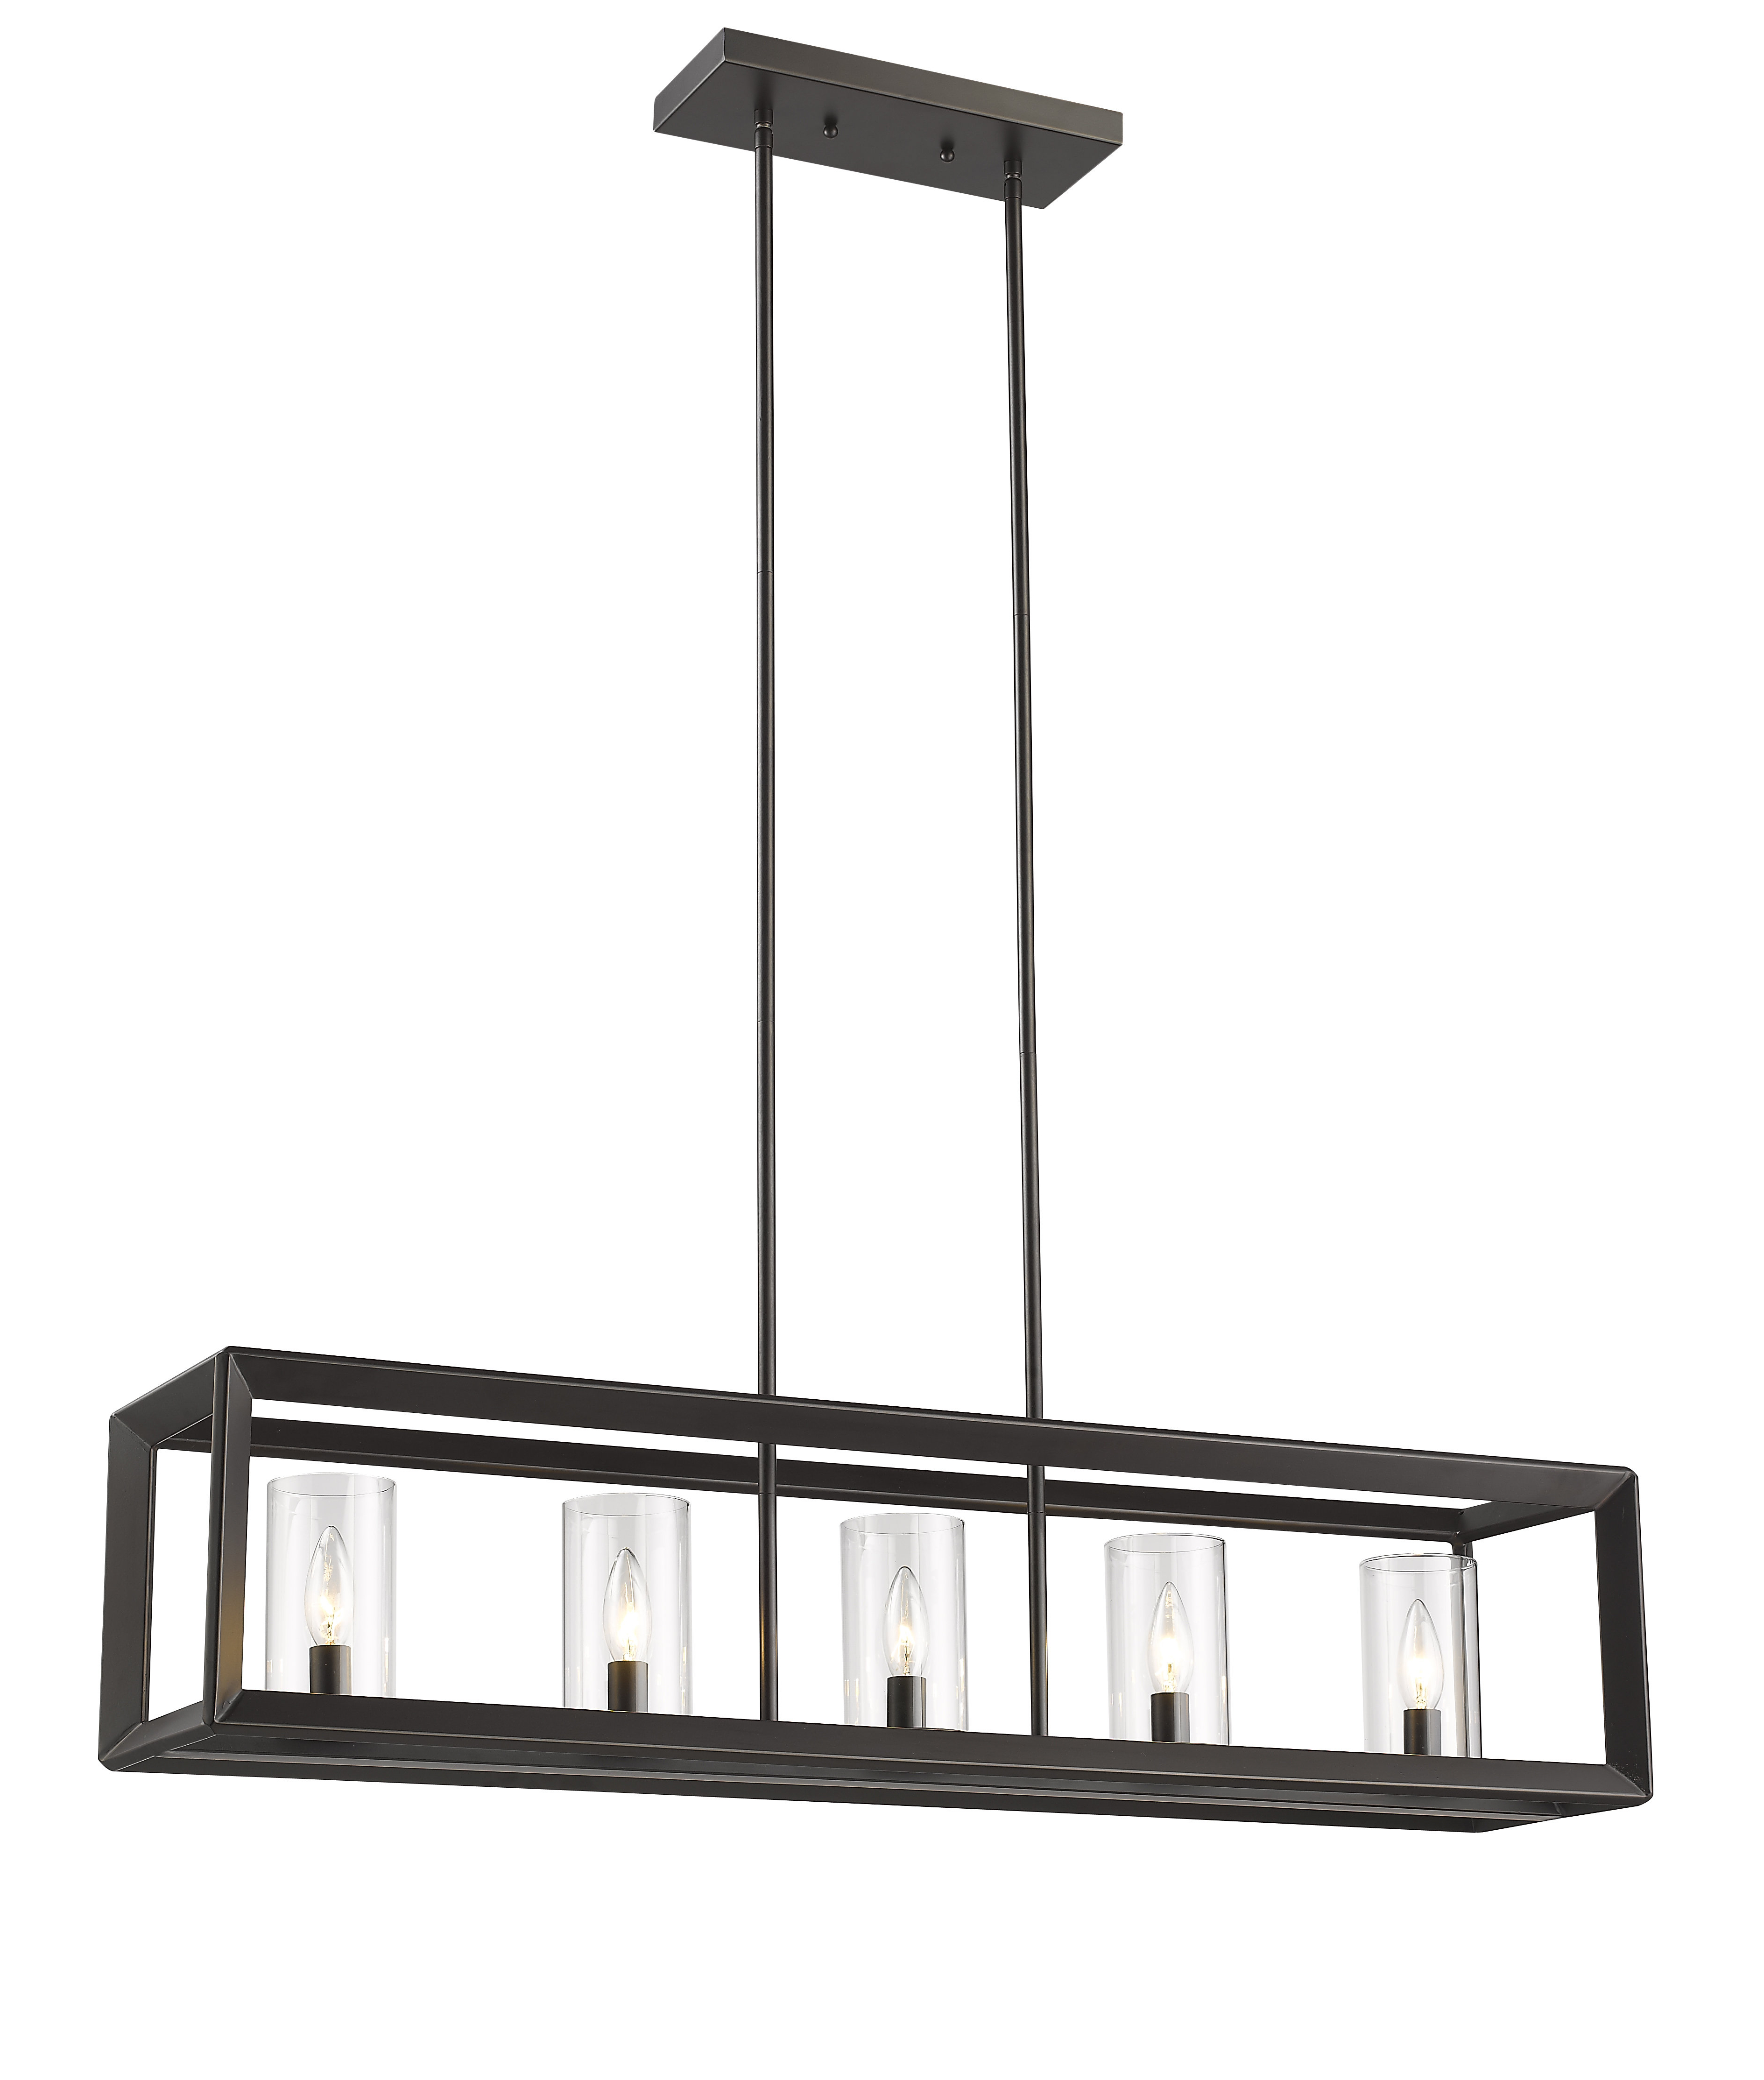 Odie 8 Light Kitchen Island Square / Rectangle Pendants Pertaining To Most Up To Date Vandoren Canyon 5 Light Kitchen Island Linear Pendant (View 17 of 25)